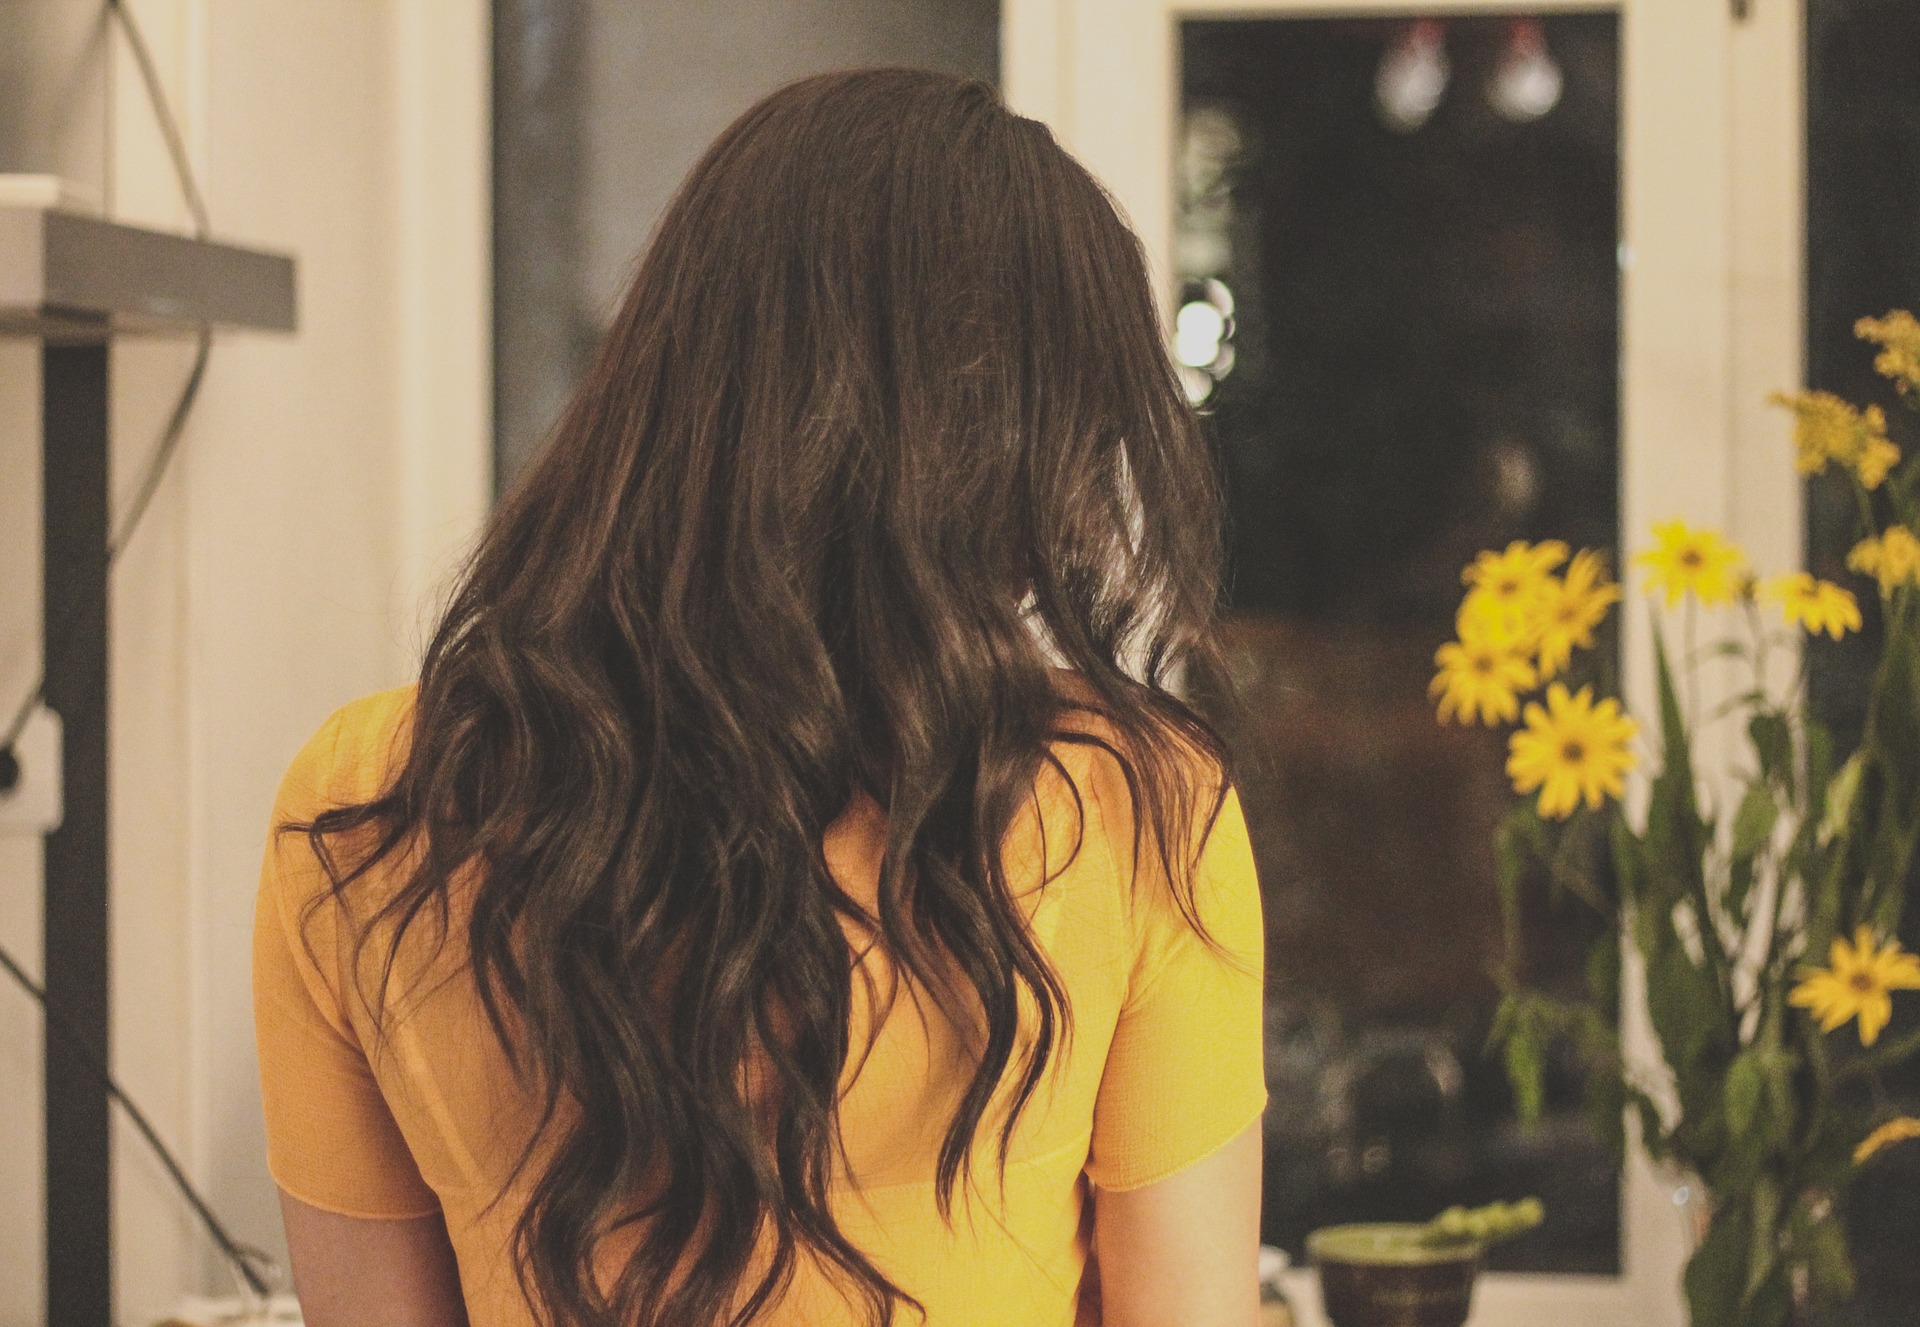 Now that you have a better idea of the benefits which essential oils can offer, it's time to get started making your own healthy hair serum. This serum takes minutes to make, but the results it produces will leave you with healthy, shiny, damage-free hair.